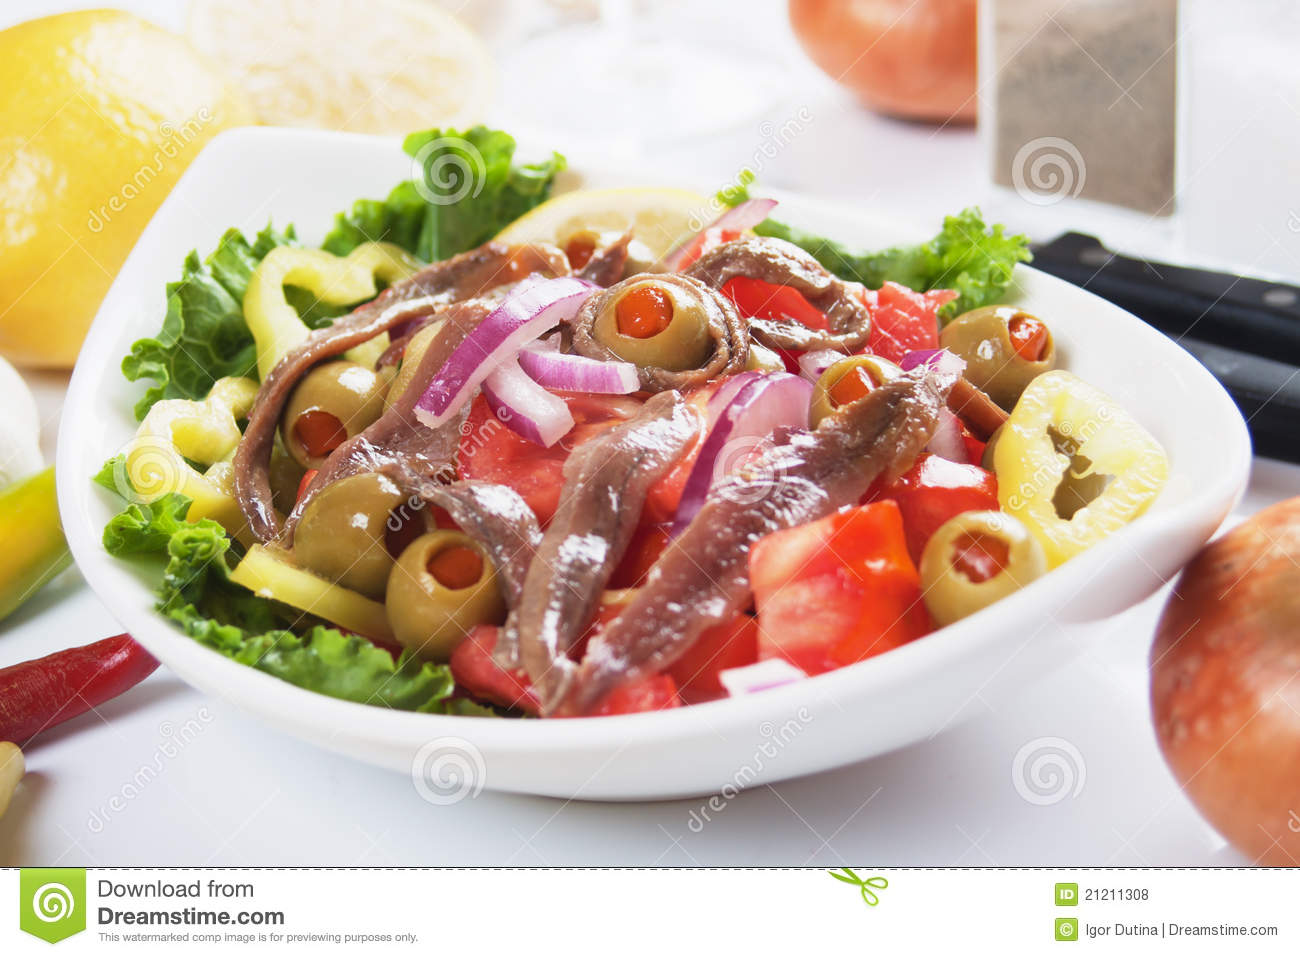 Anchovy salad with olives, tomato, onion and pepper.